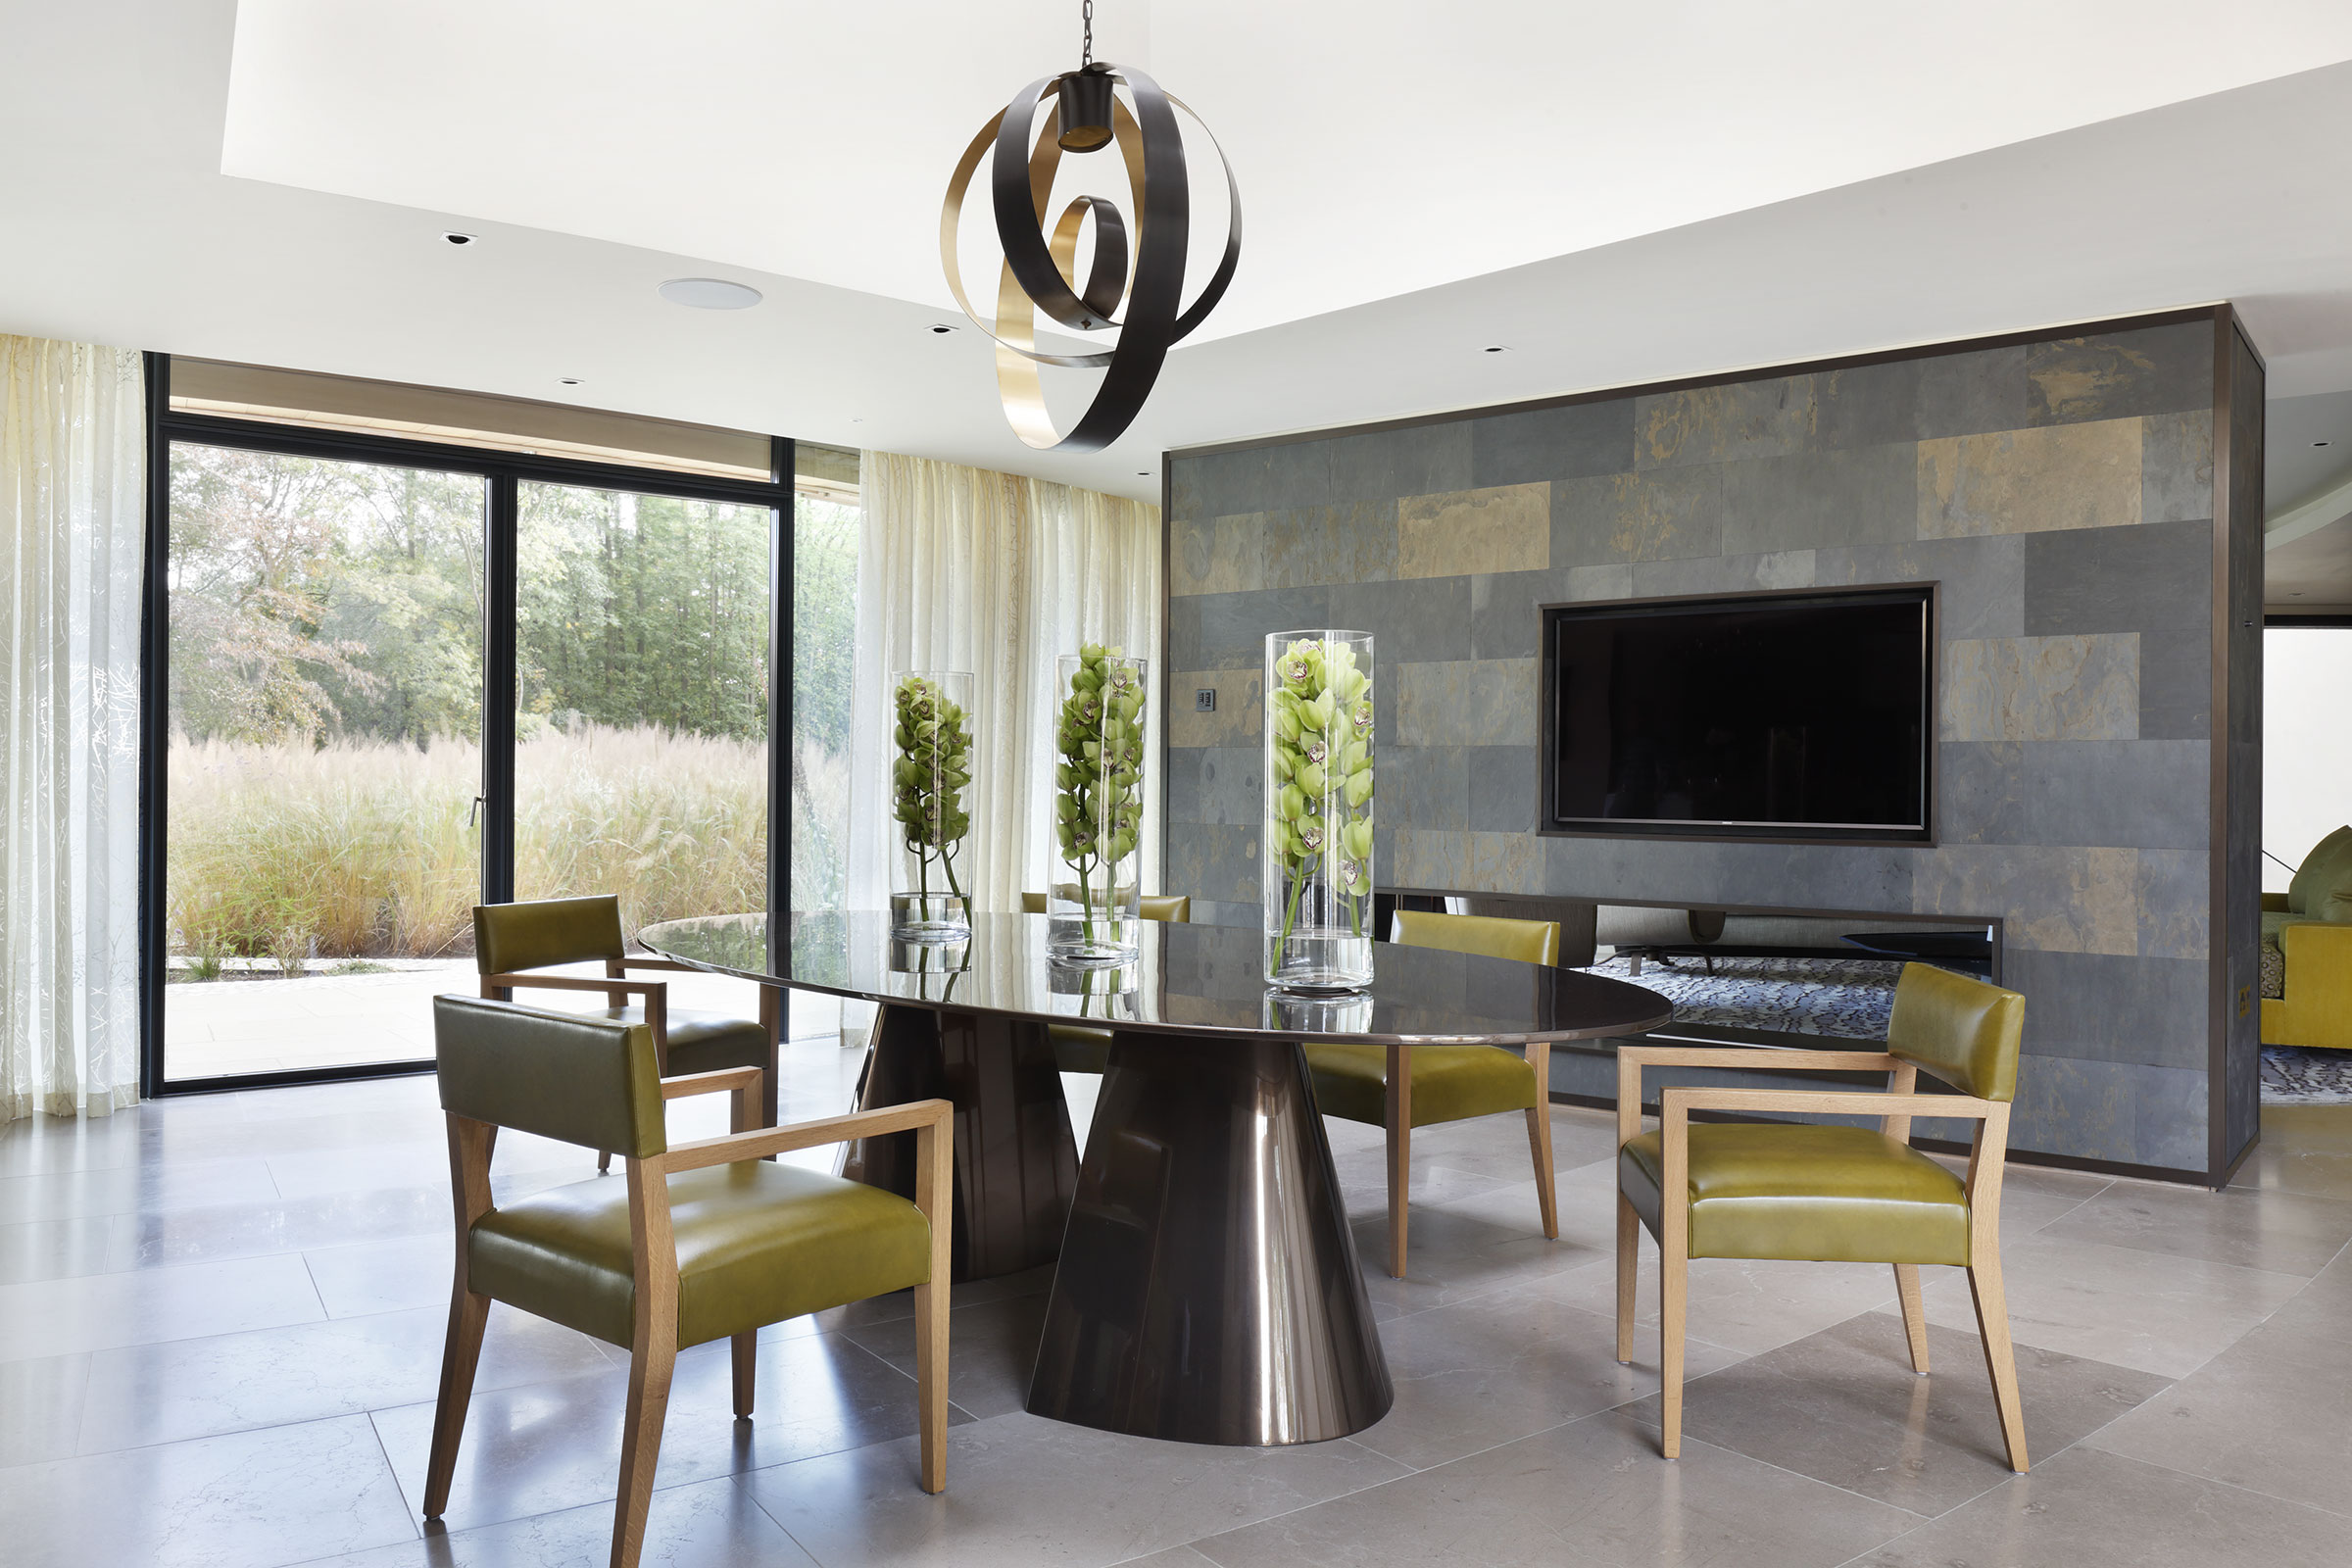 For over twenty years mark gillette interior architecture and design has been widely regarded as one of the leading interior architecture and design firms